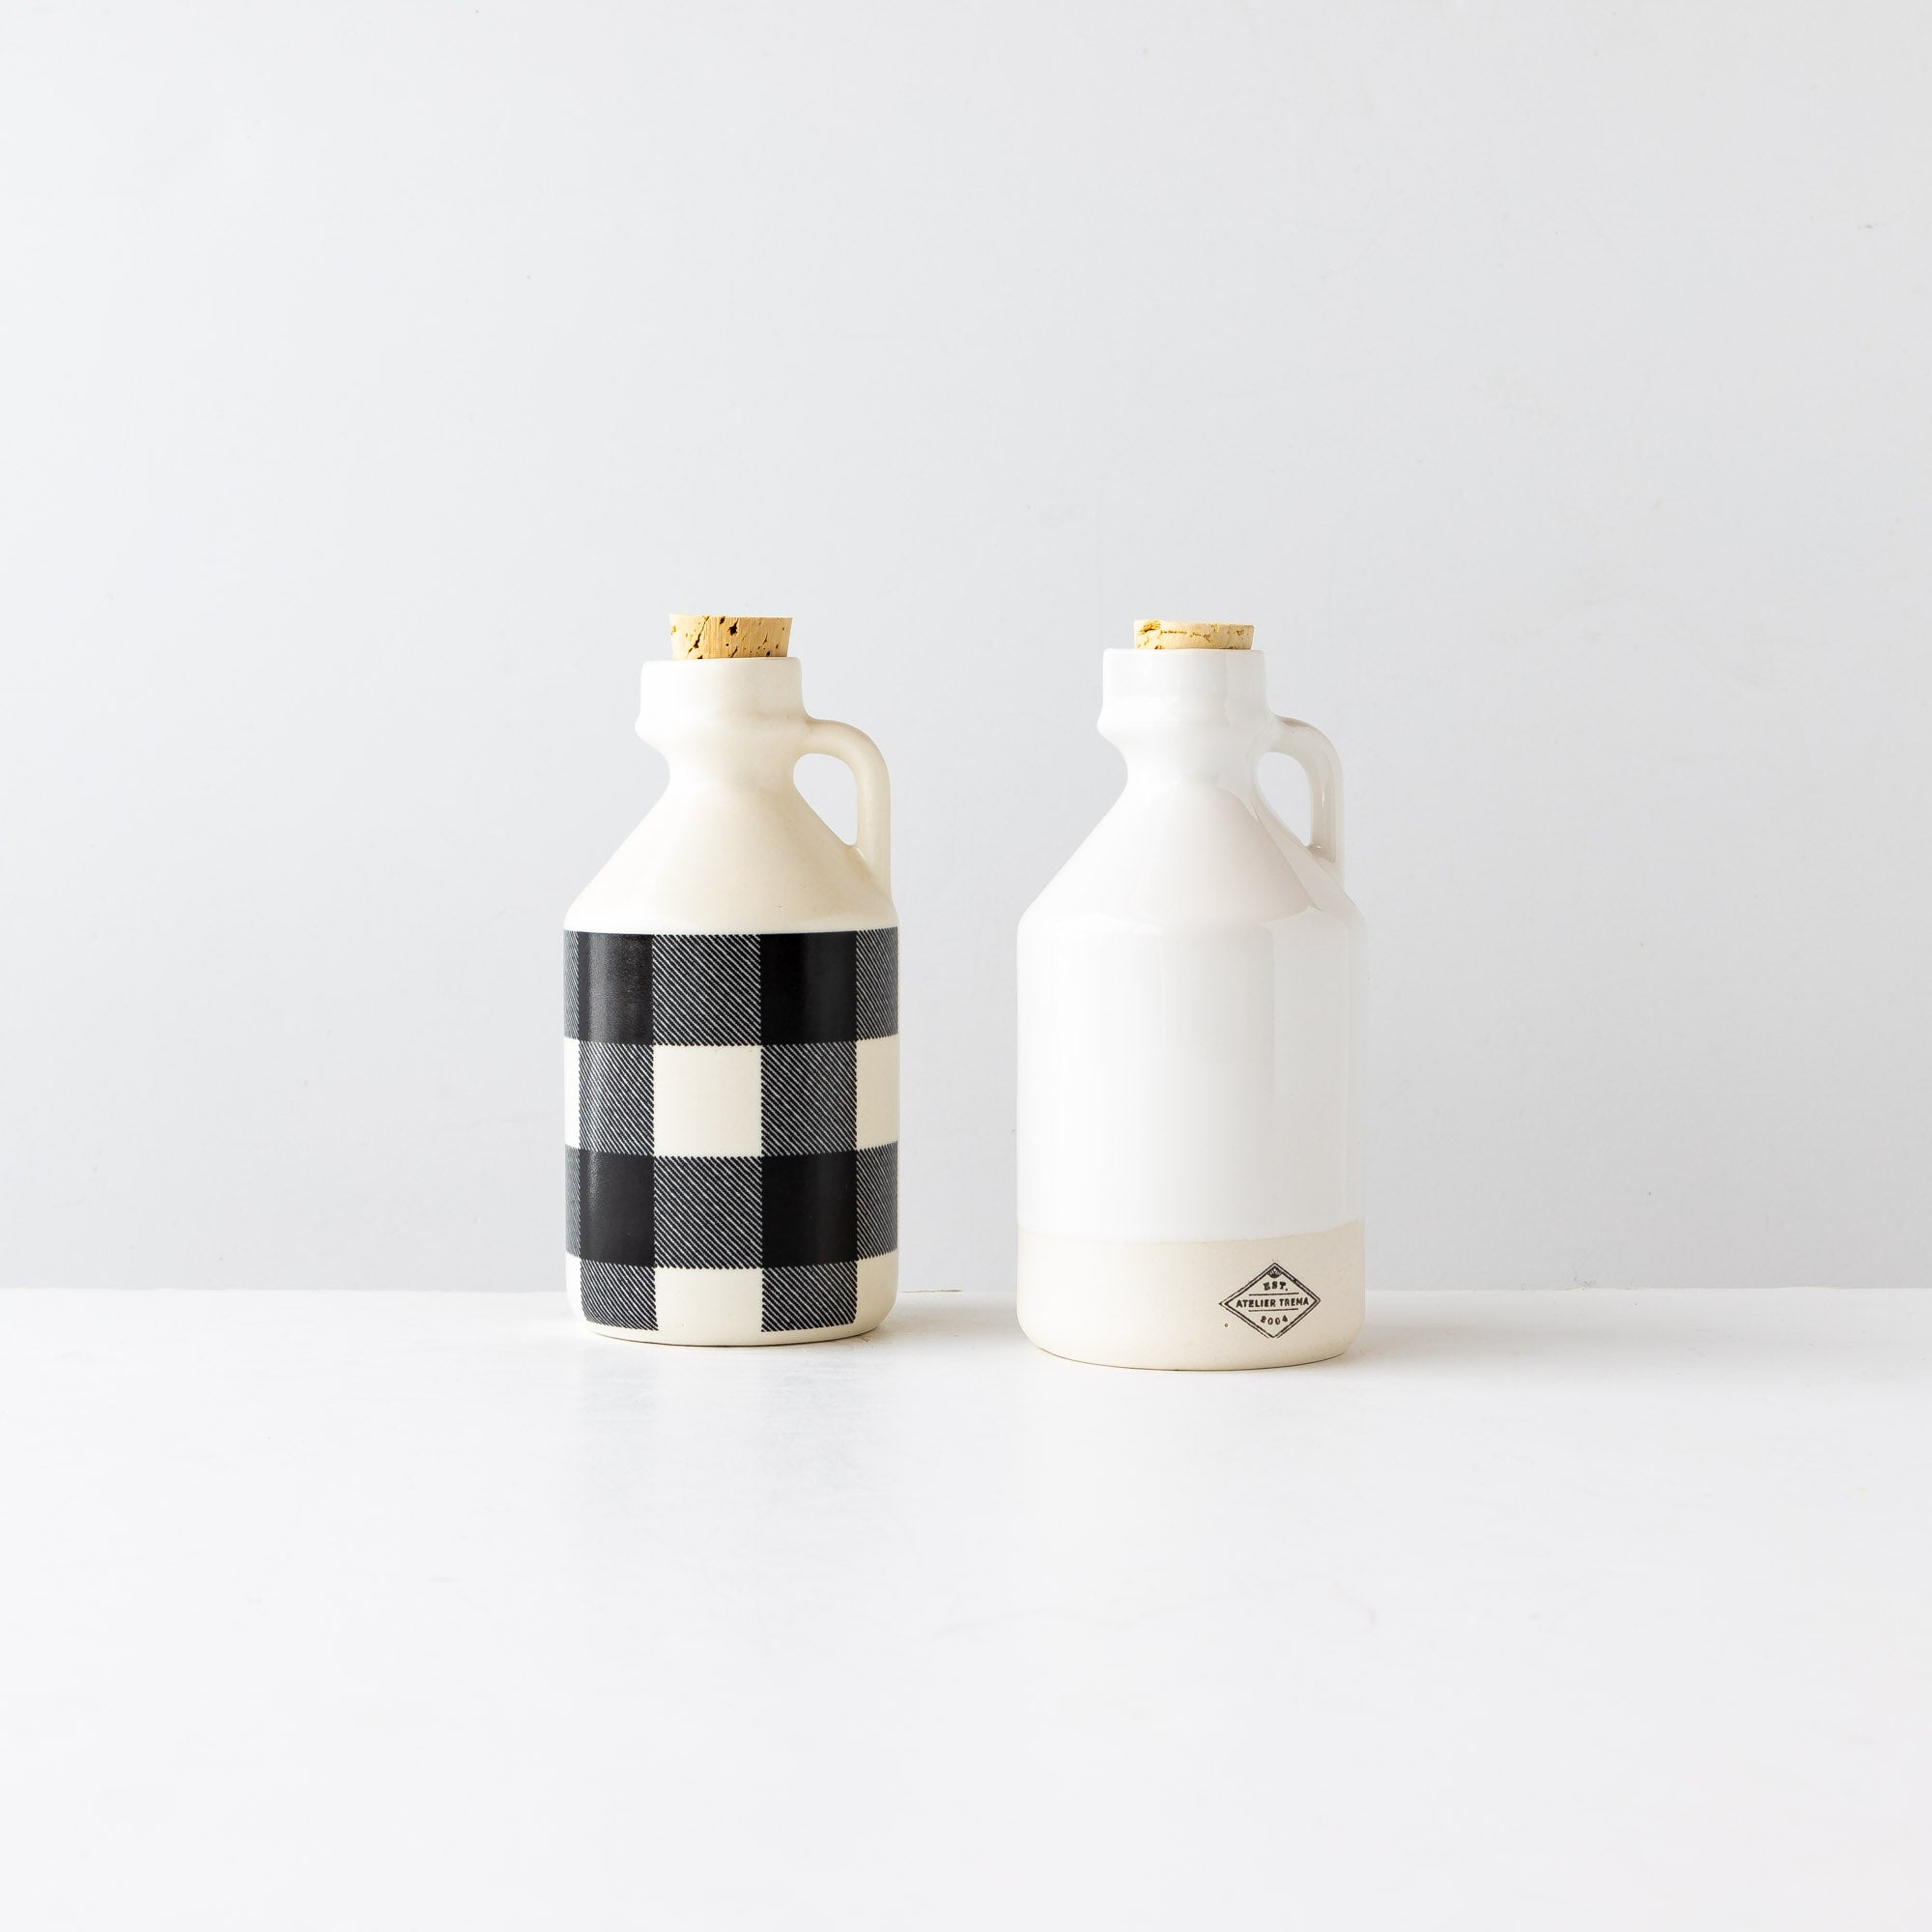 Two Handmade Porcelain Maple Syrup Bottles / Jugs - Sold by Chic & Basta